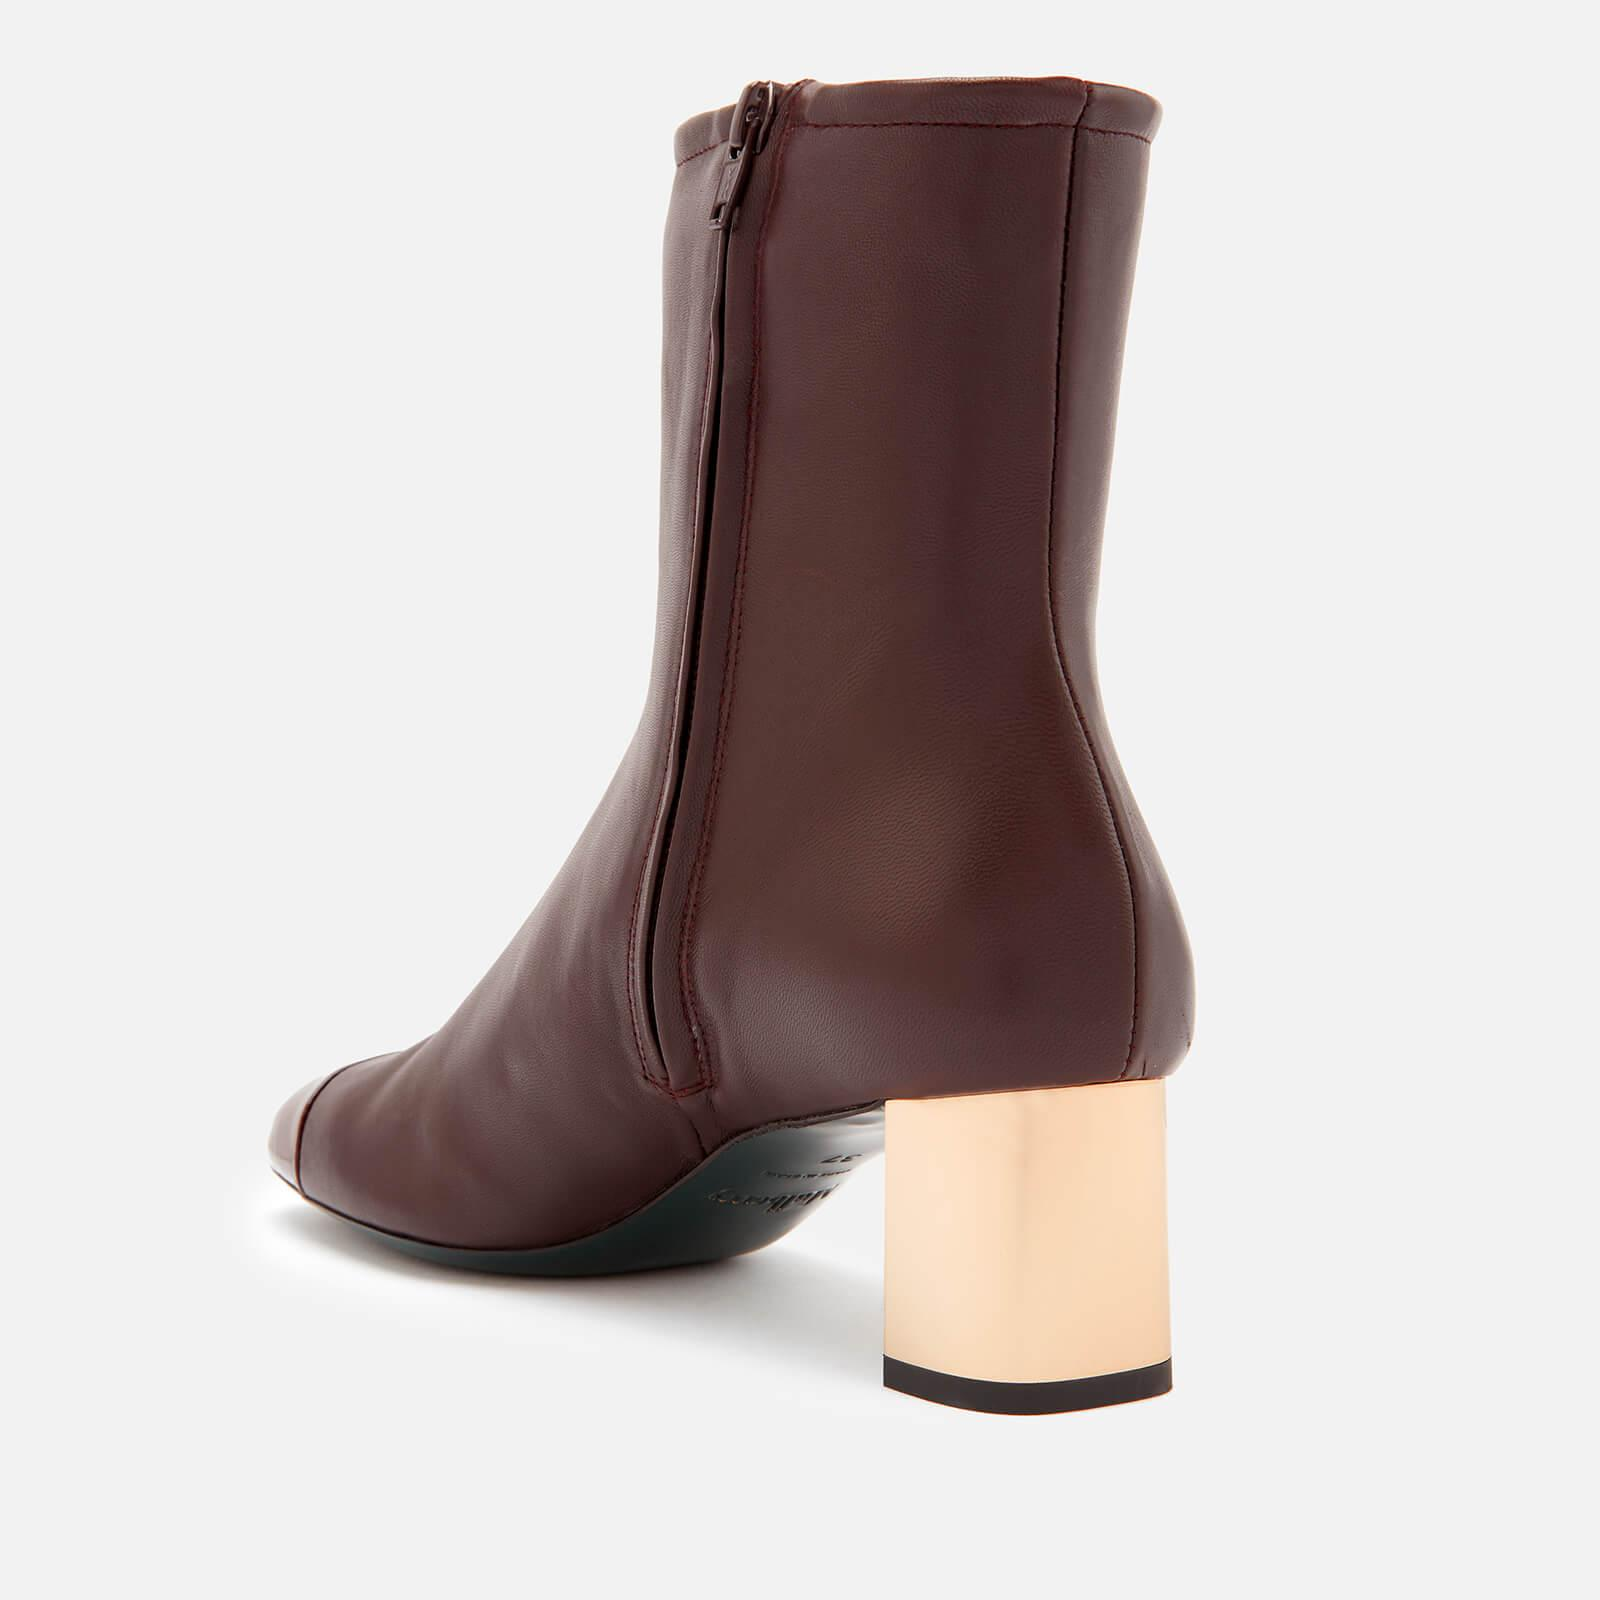 f7cbd97d328 Mulberry - Red Patent Heeled Ankle Boots - Lyst. View fullscreen